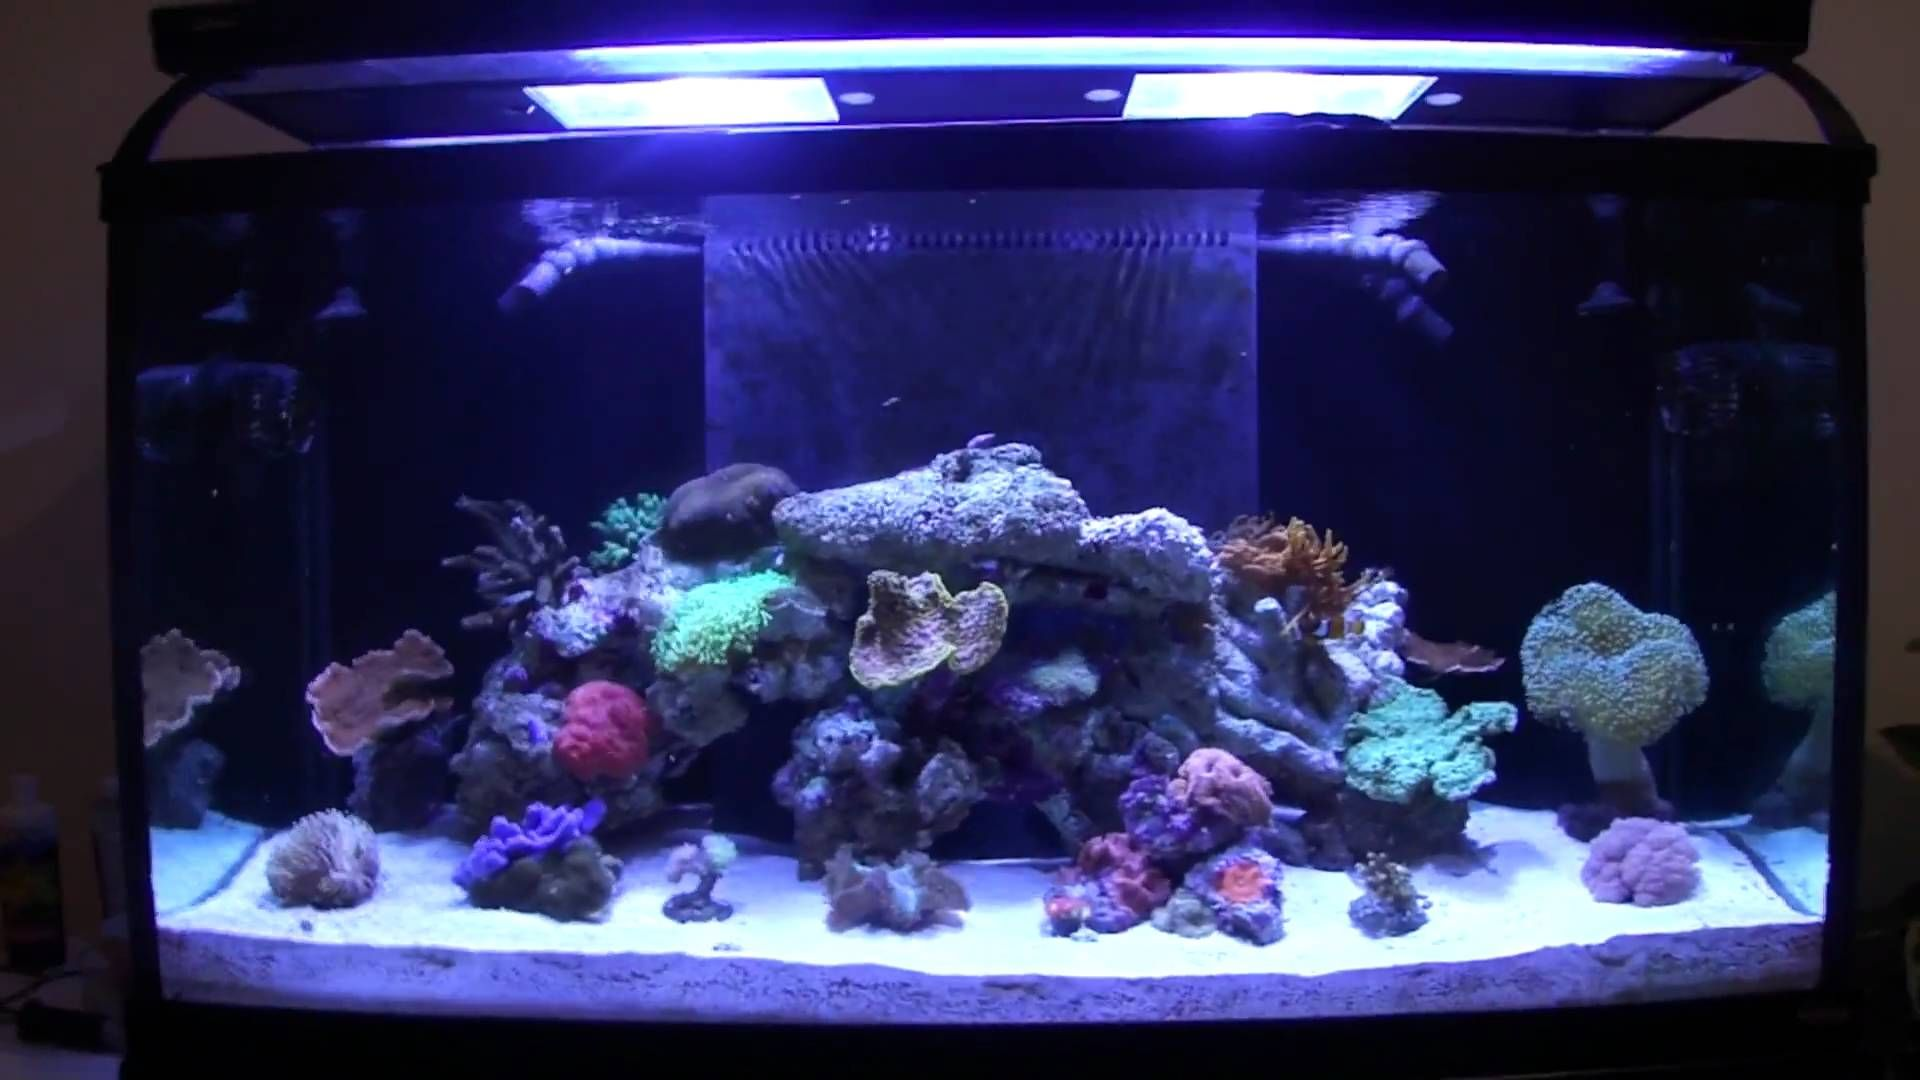 Educational Video On How To Prevent And Deal With Green Hair Algae Growth  In Saltwater U0026 Reef Aquariums.